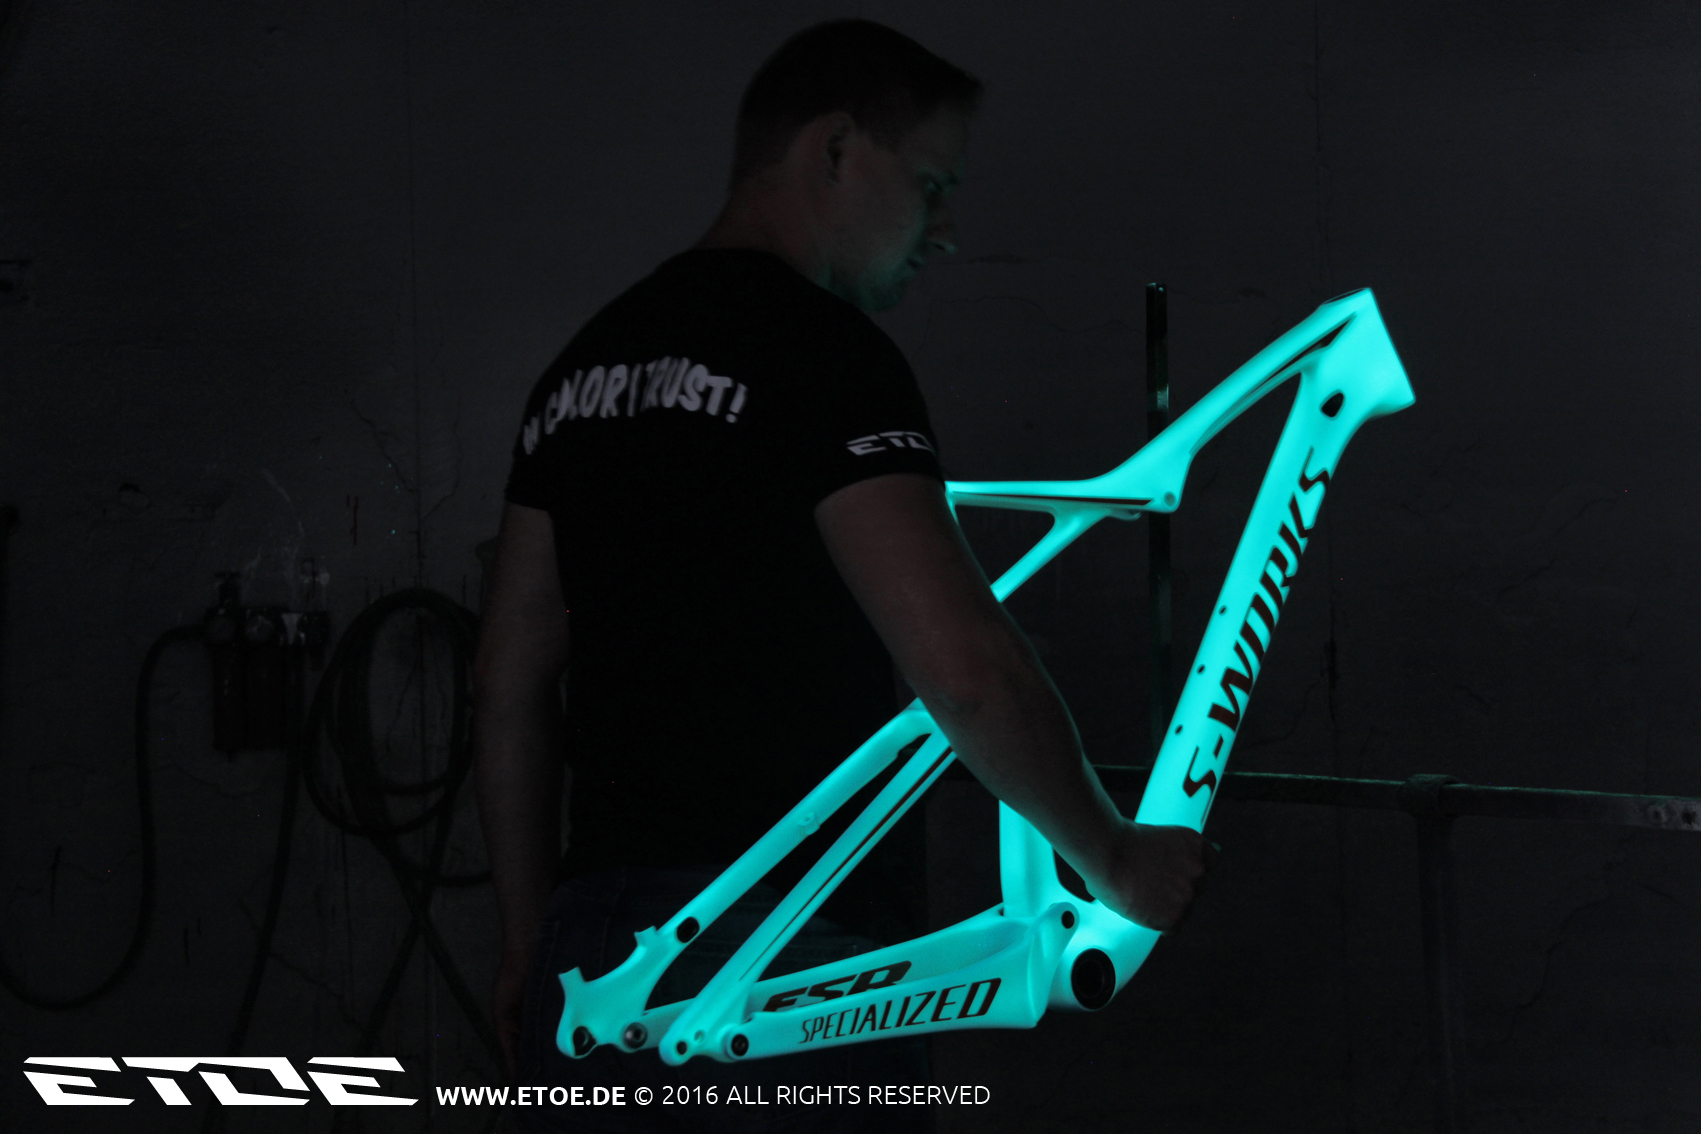 specialized glow in the dark